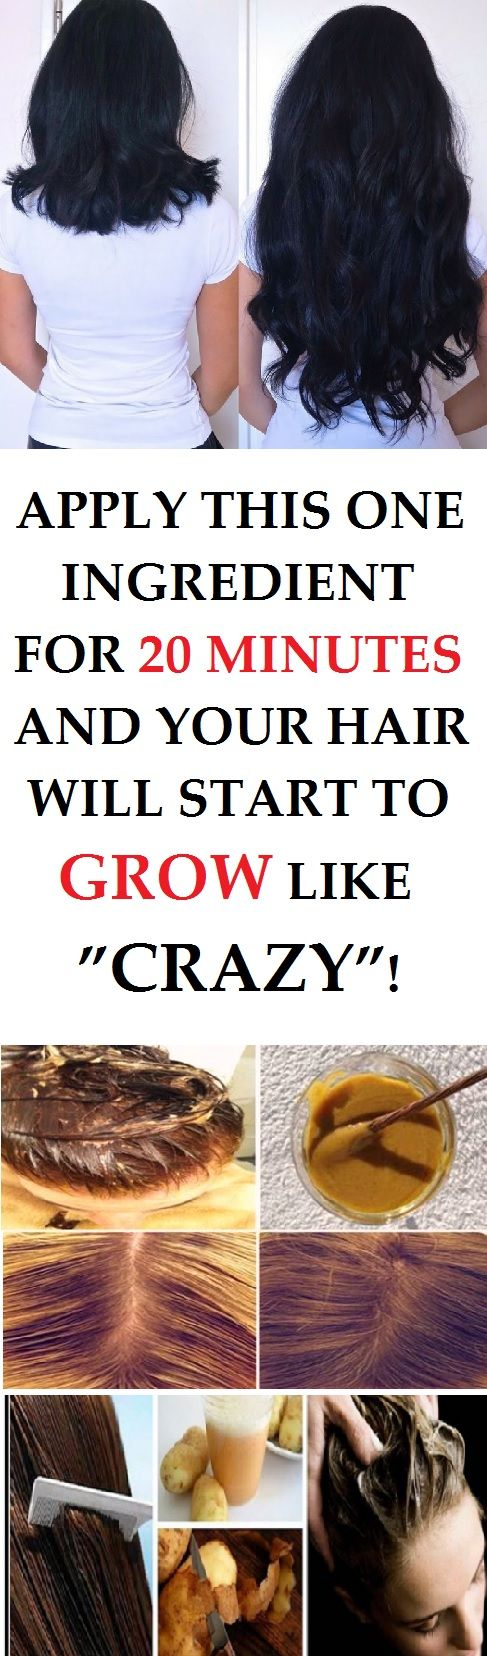 This is a homemade recipe that will make your hair grow really quickly and includes only one ingredient that you already have in your home.